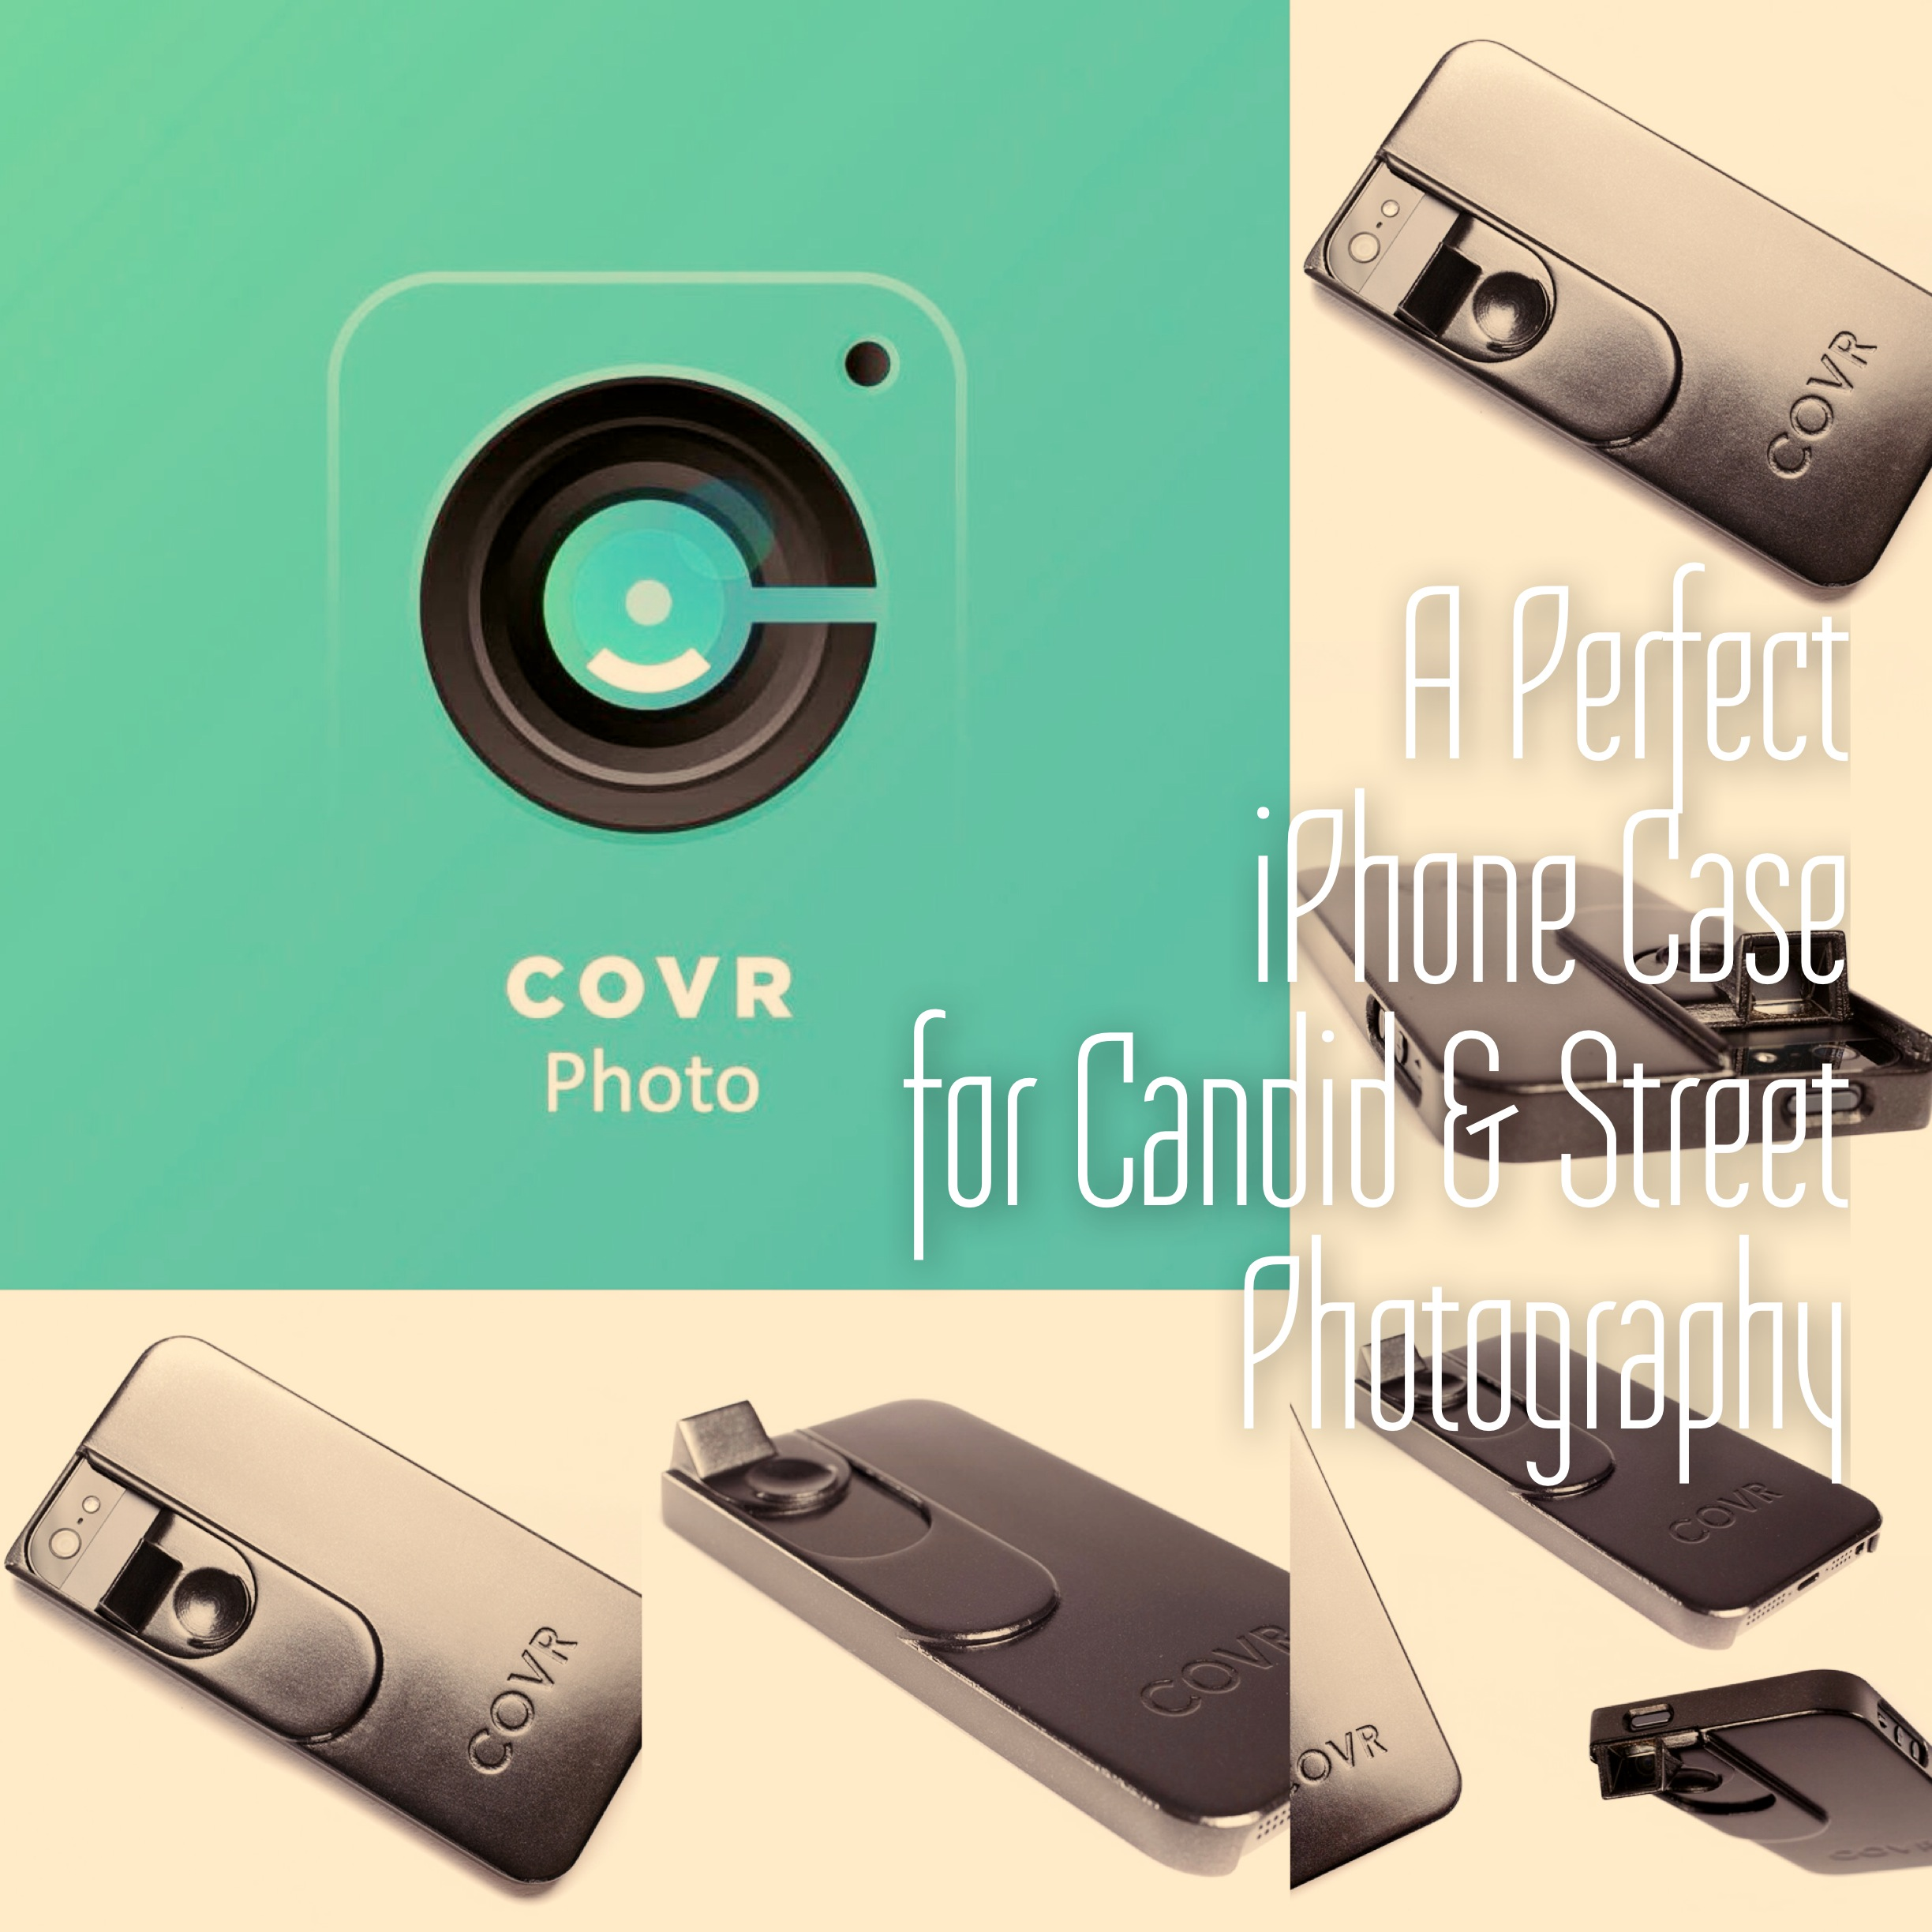 newest d71f4 9a623 COVR Photo - a Perfect iPhone Case for Candid and Street Photography ...